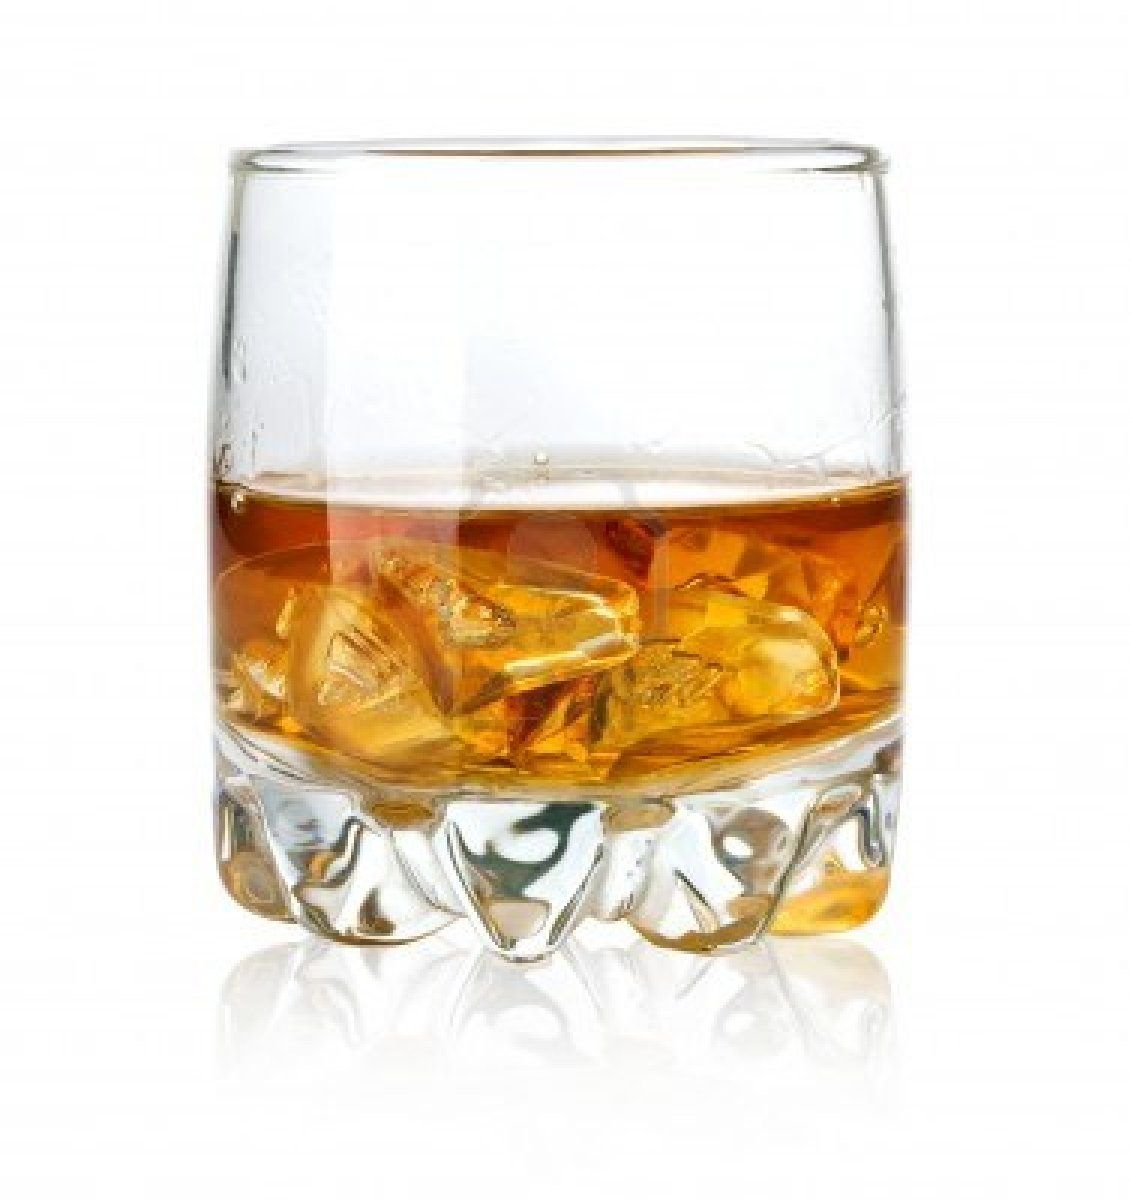 whisky icons verres pinterest the rock the o 39 jays. Black Bedroom Furniture Sets. Home Design Ideas